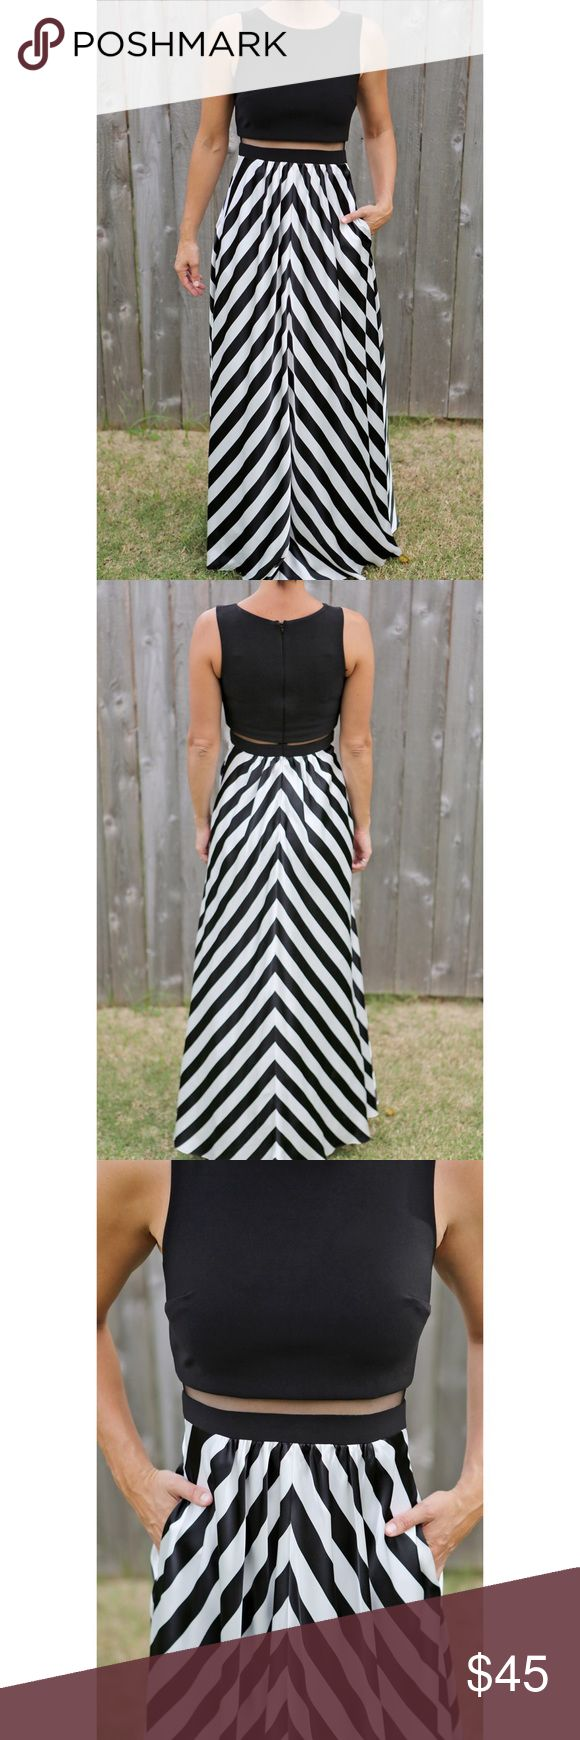 Betsy & Adam prom dress size 2 Beautiful long Betsy & Adam striped dress with pockets Size 2.  Great for Prom Betsy & Adam Dresses Prom